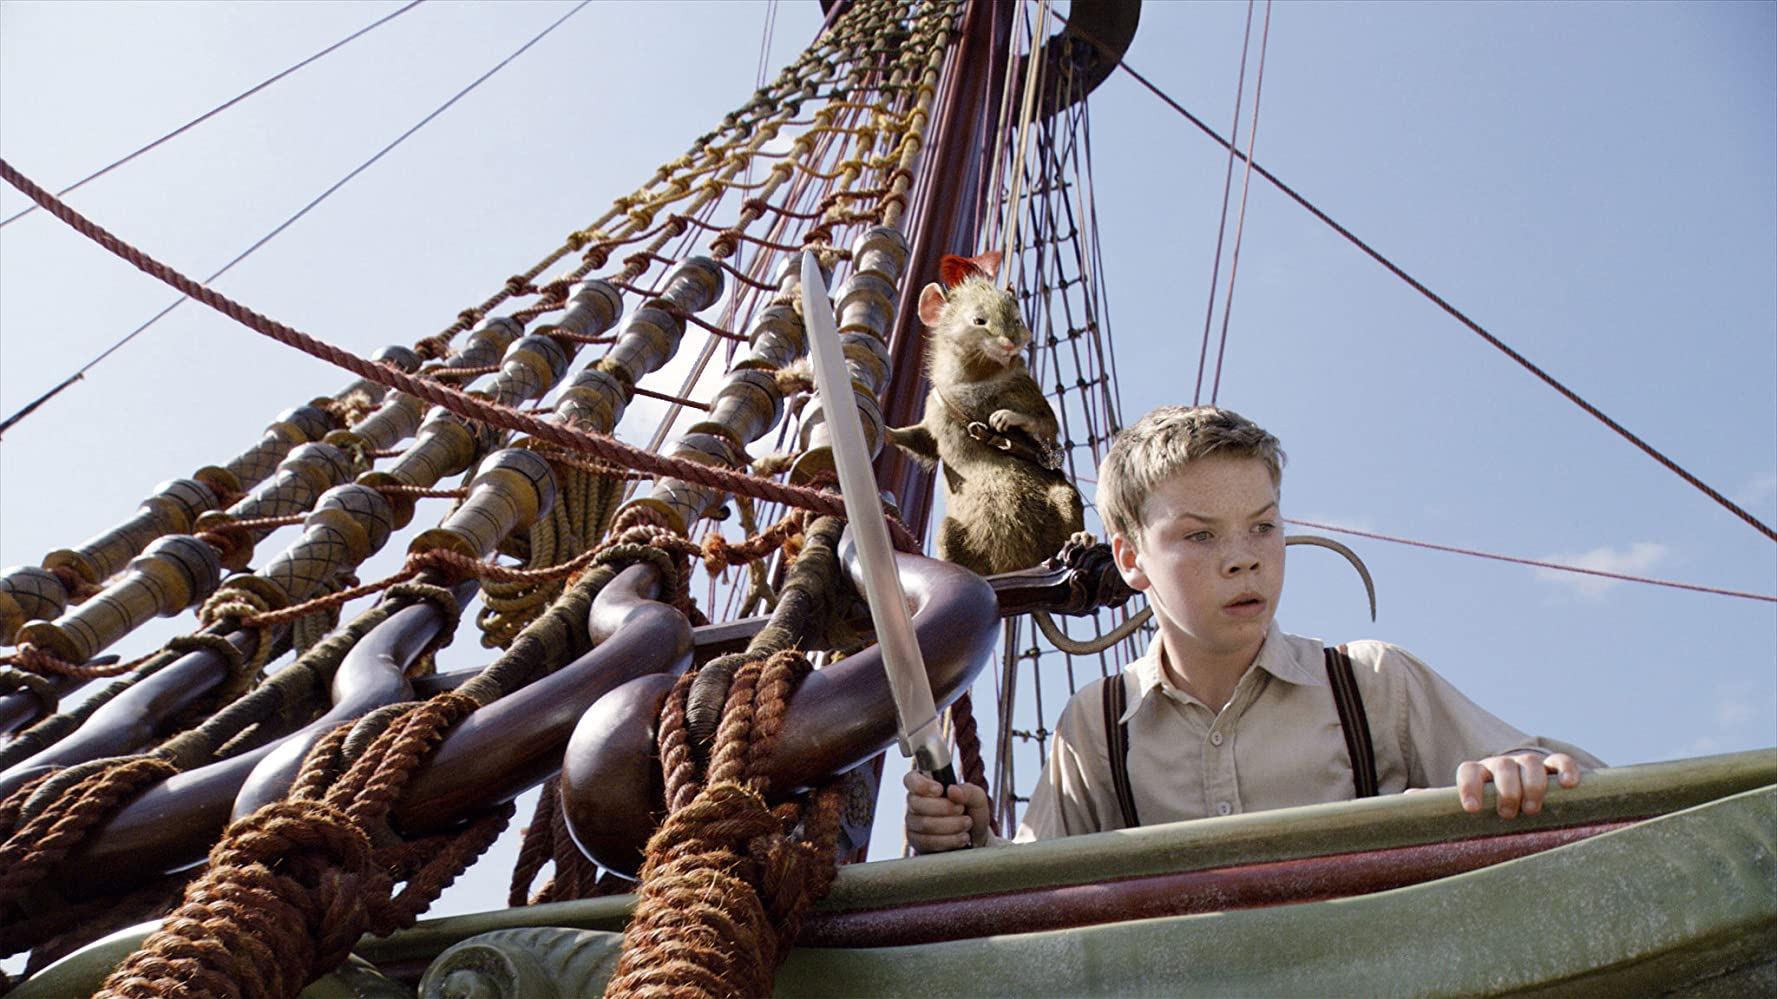 Will Poulter in The Chronicles of Narnia: The Voyage of the Dawn Treader (2010)